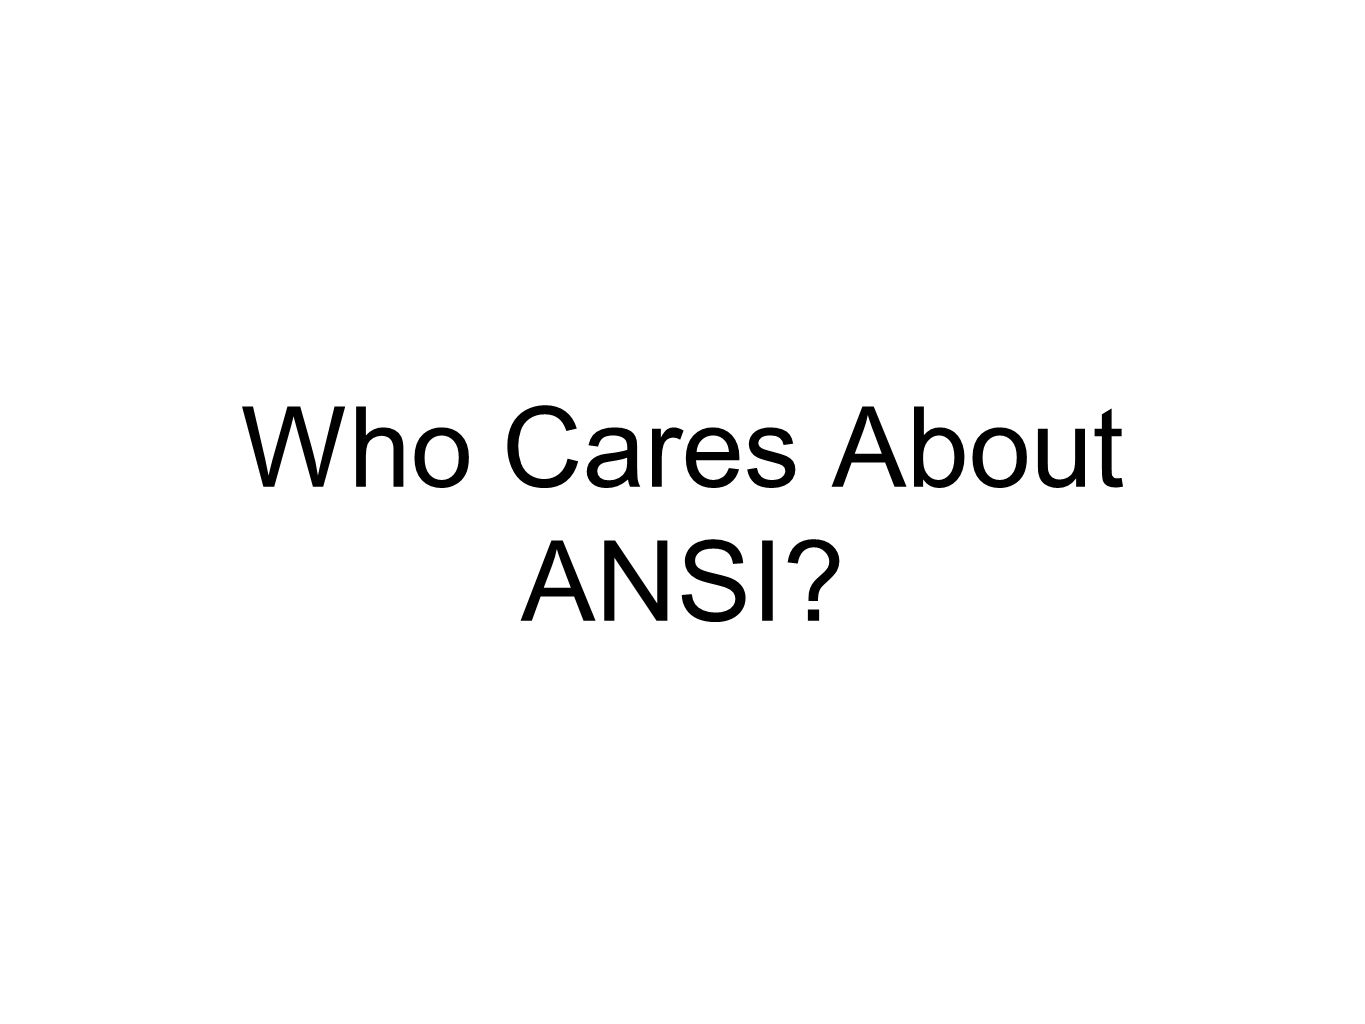 Who Cares About ANSI